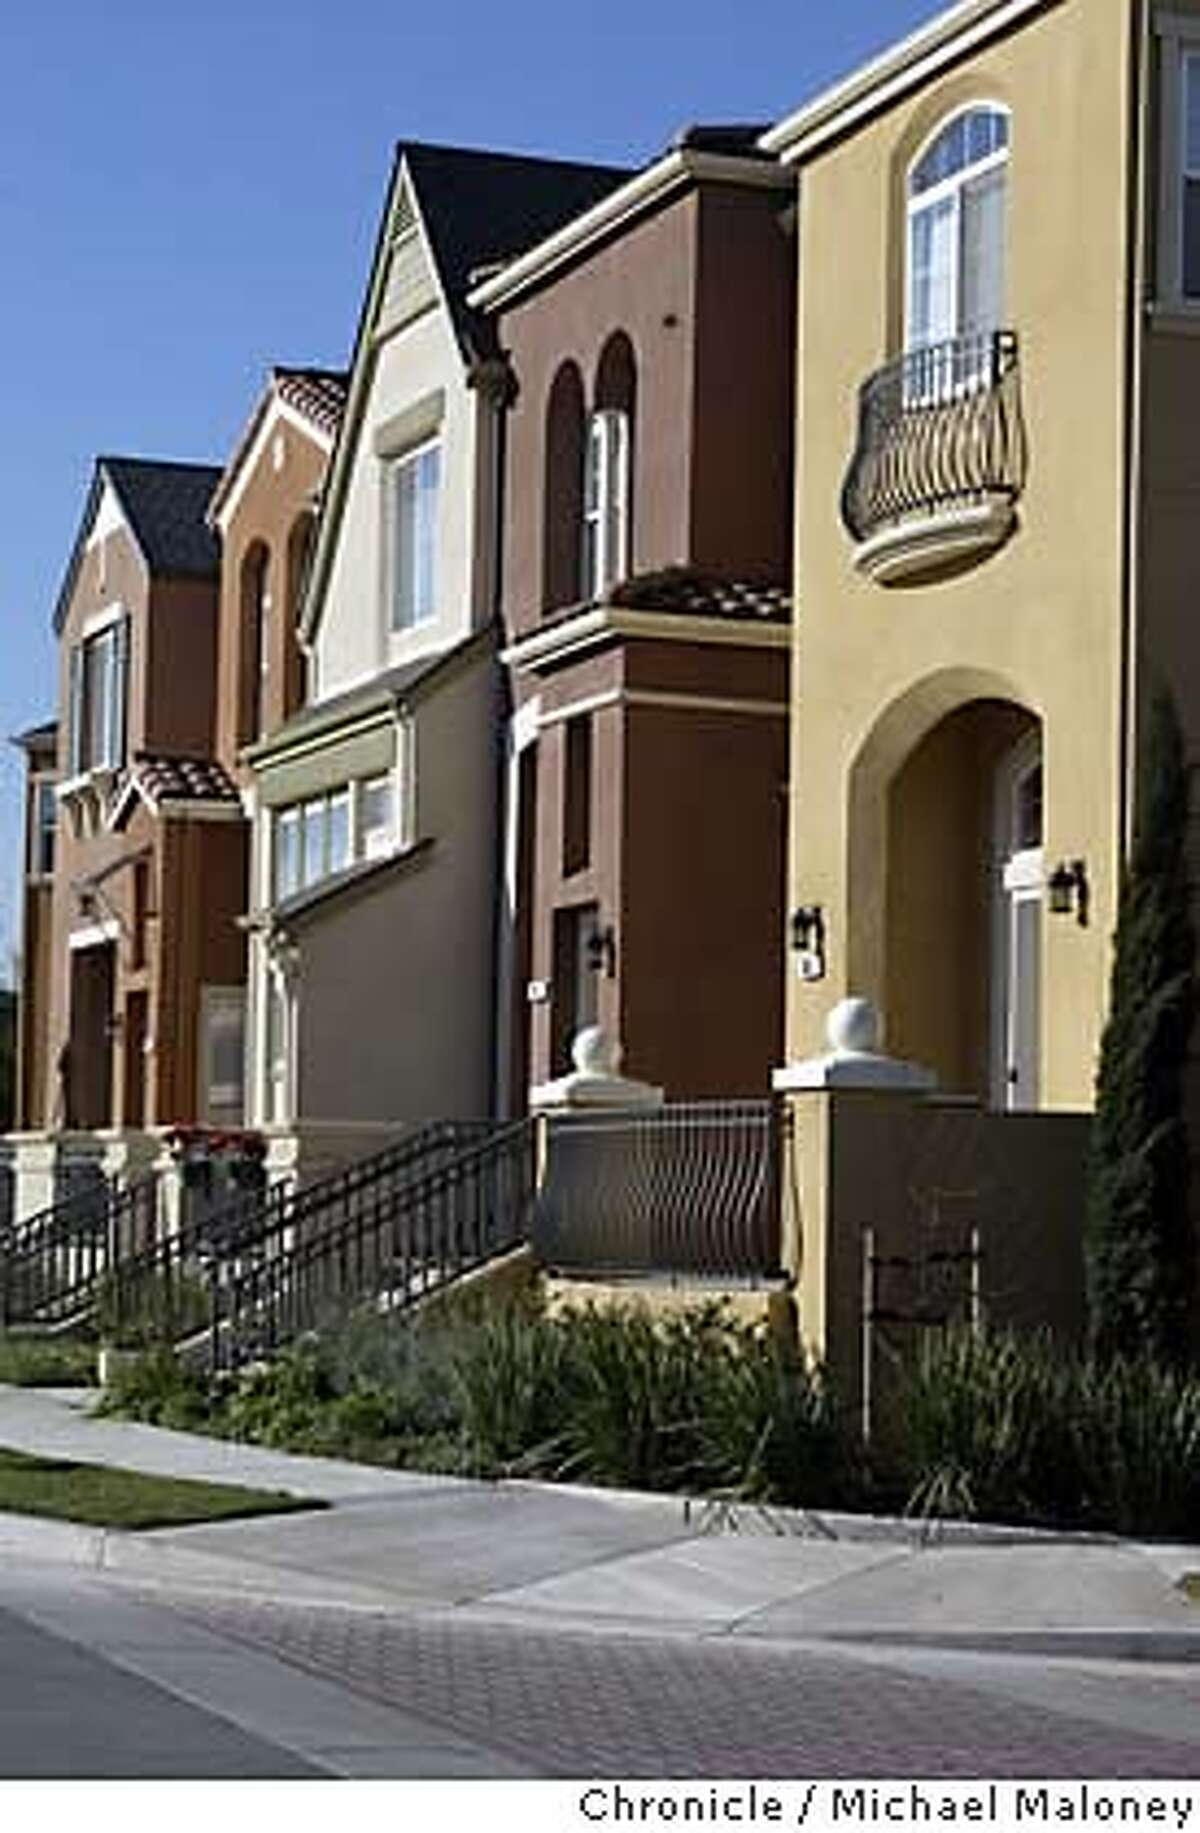 Rivermark is a new suburban project in Santa Clara near Montague Expressway. It consists of new colorfull tightly packed two story homes located near an equally new retail center. Michael Maloney / The Chronicle